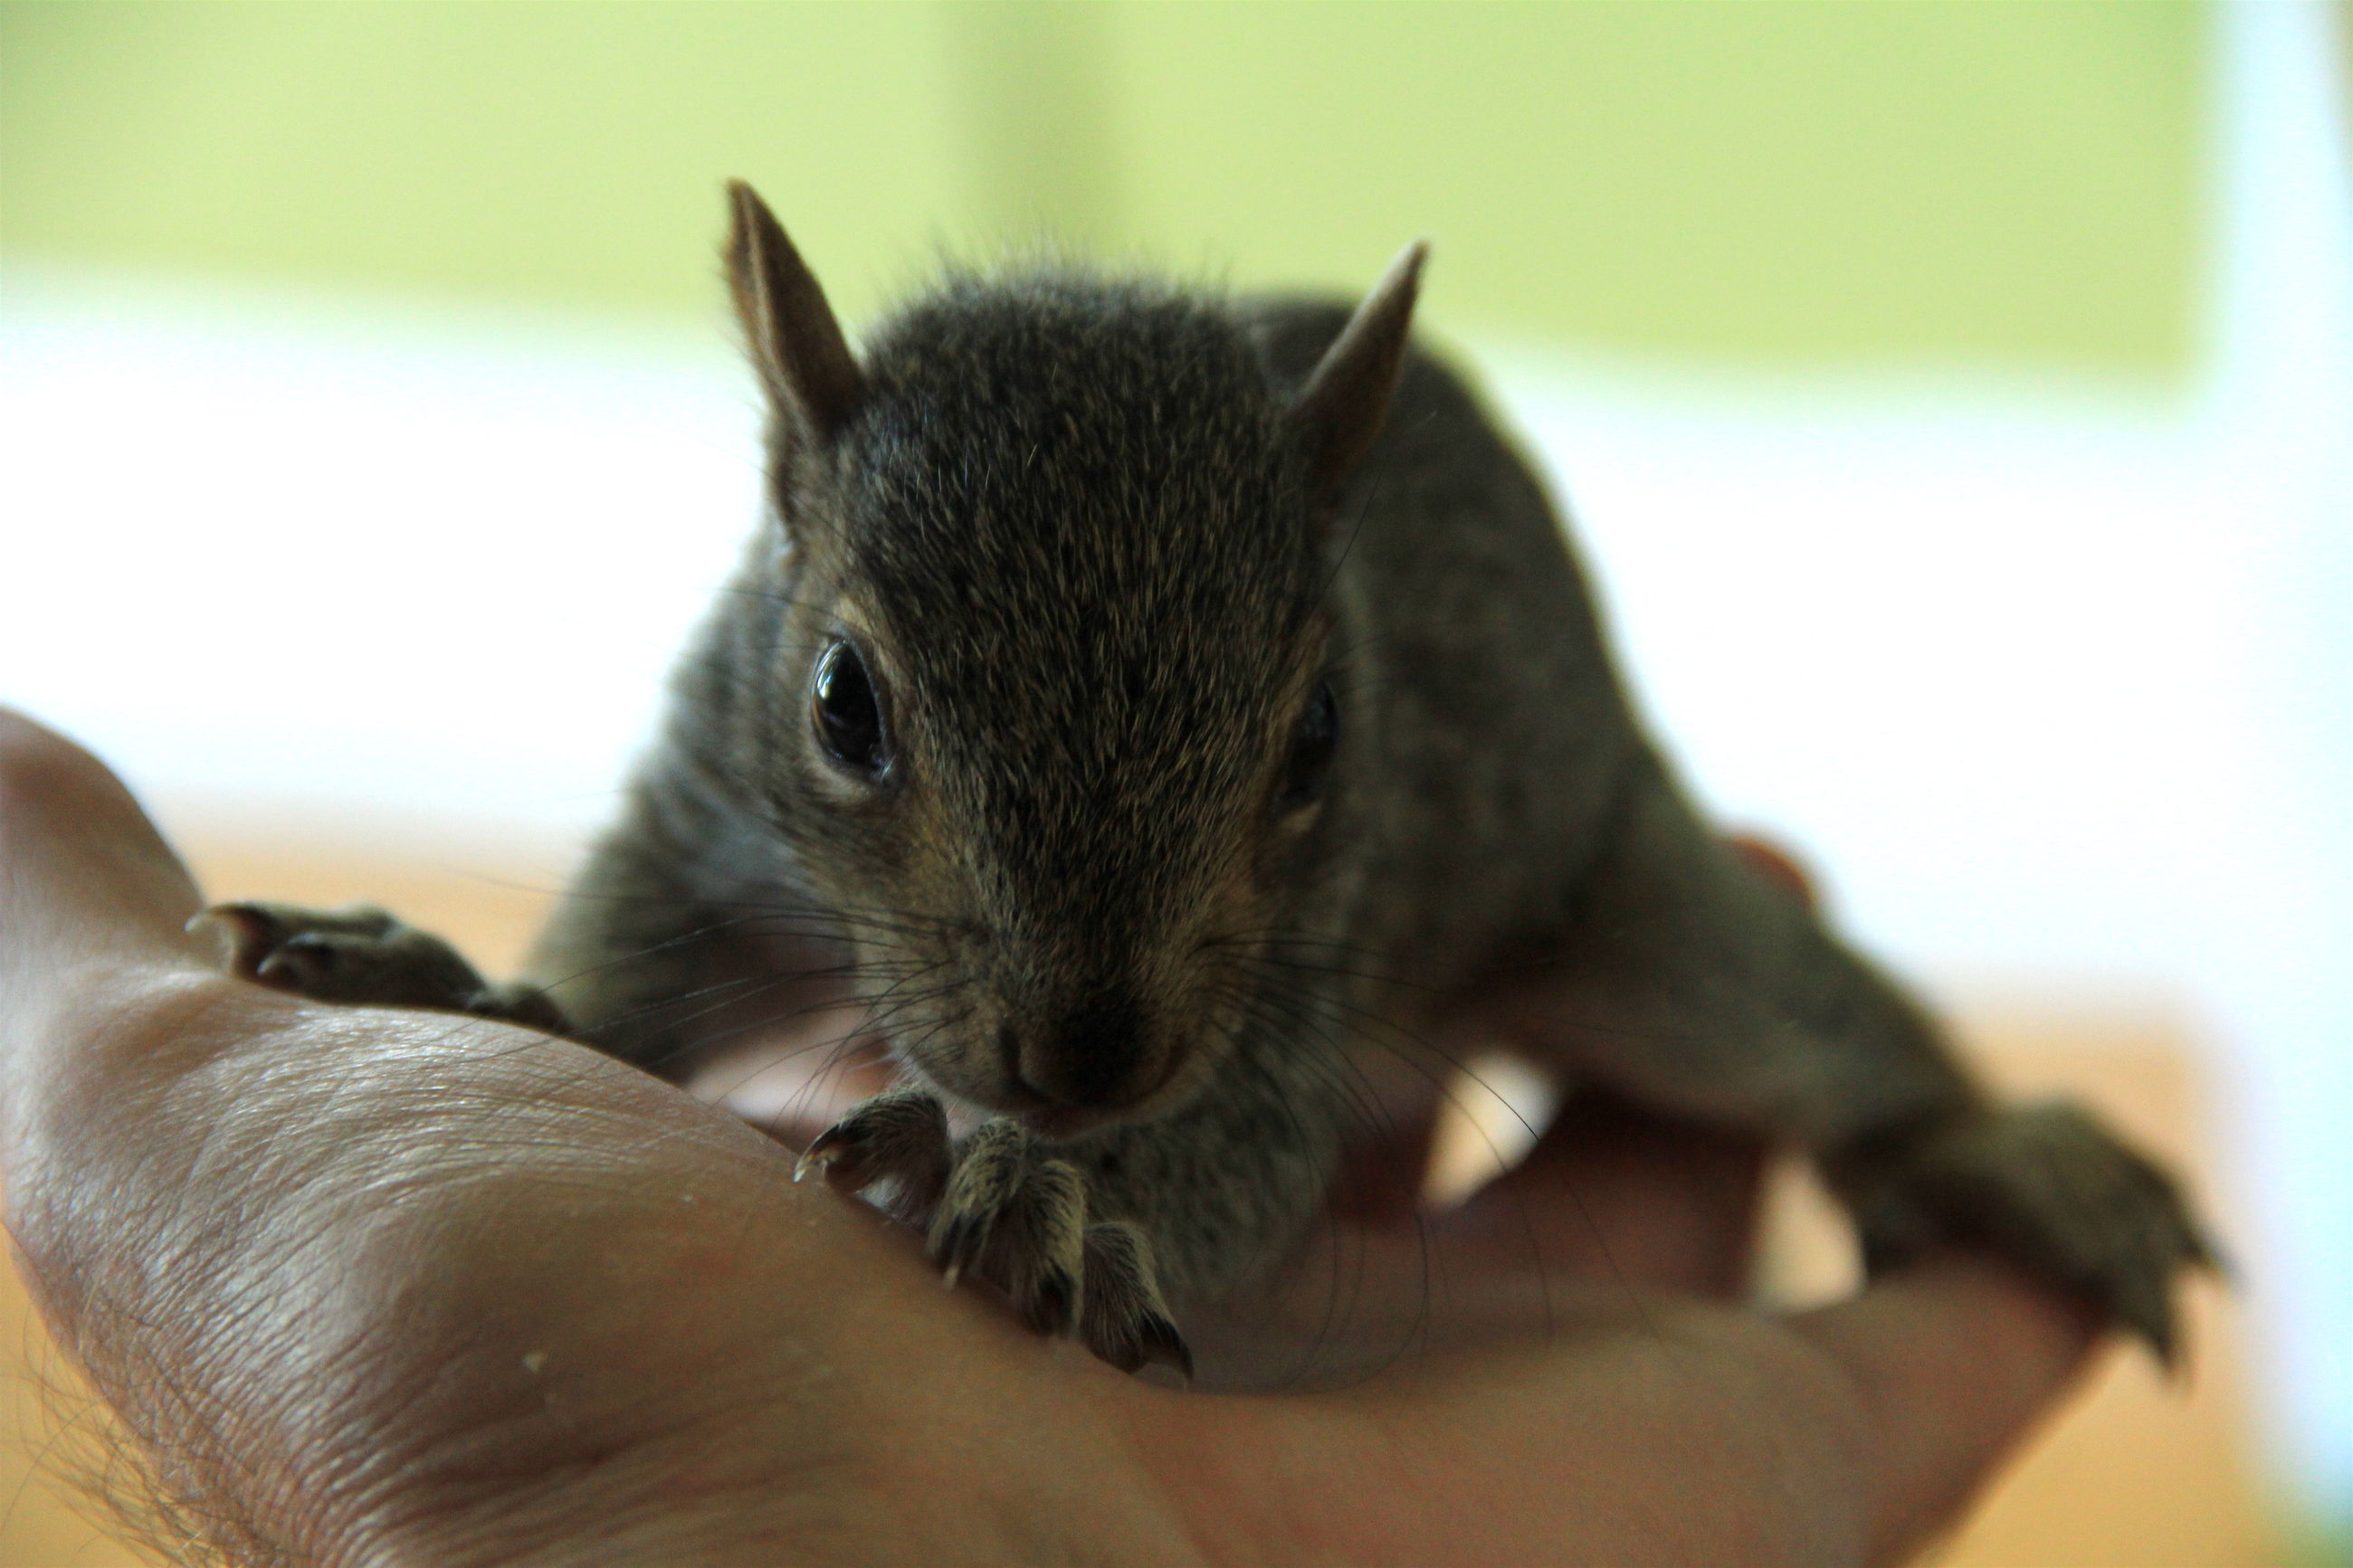 Close-up of hand holding squirrel